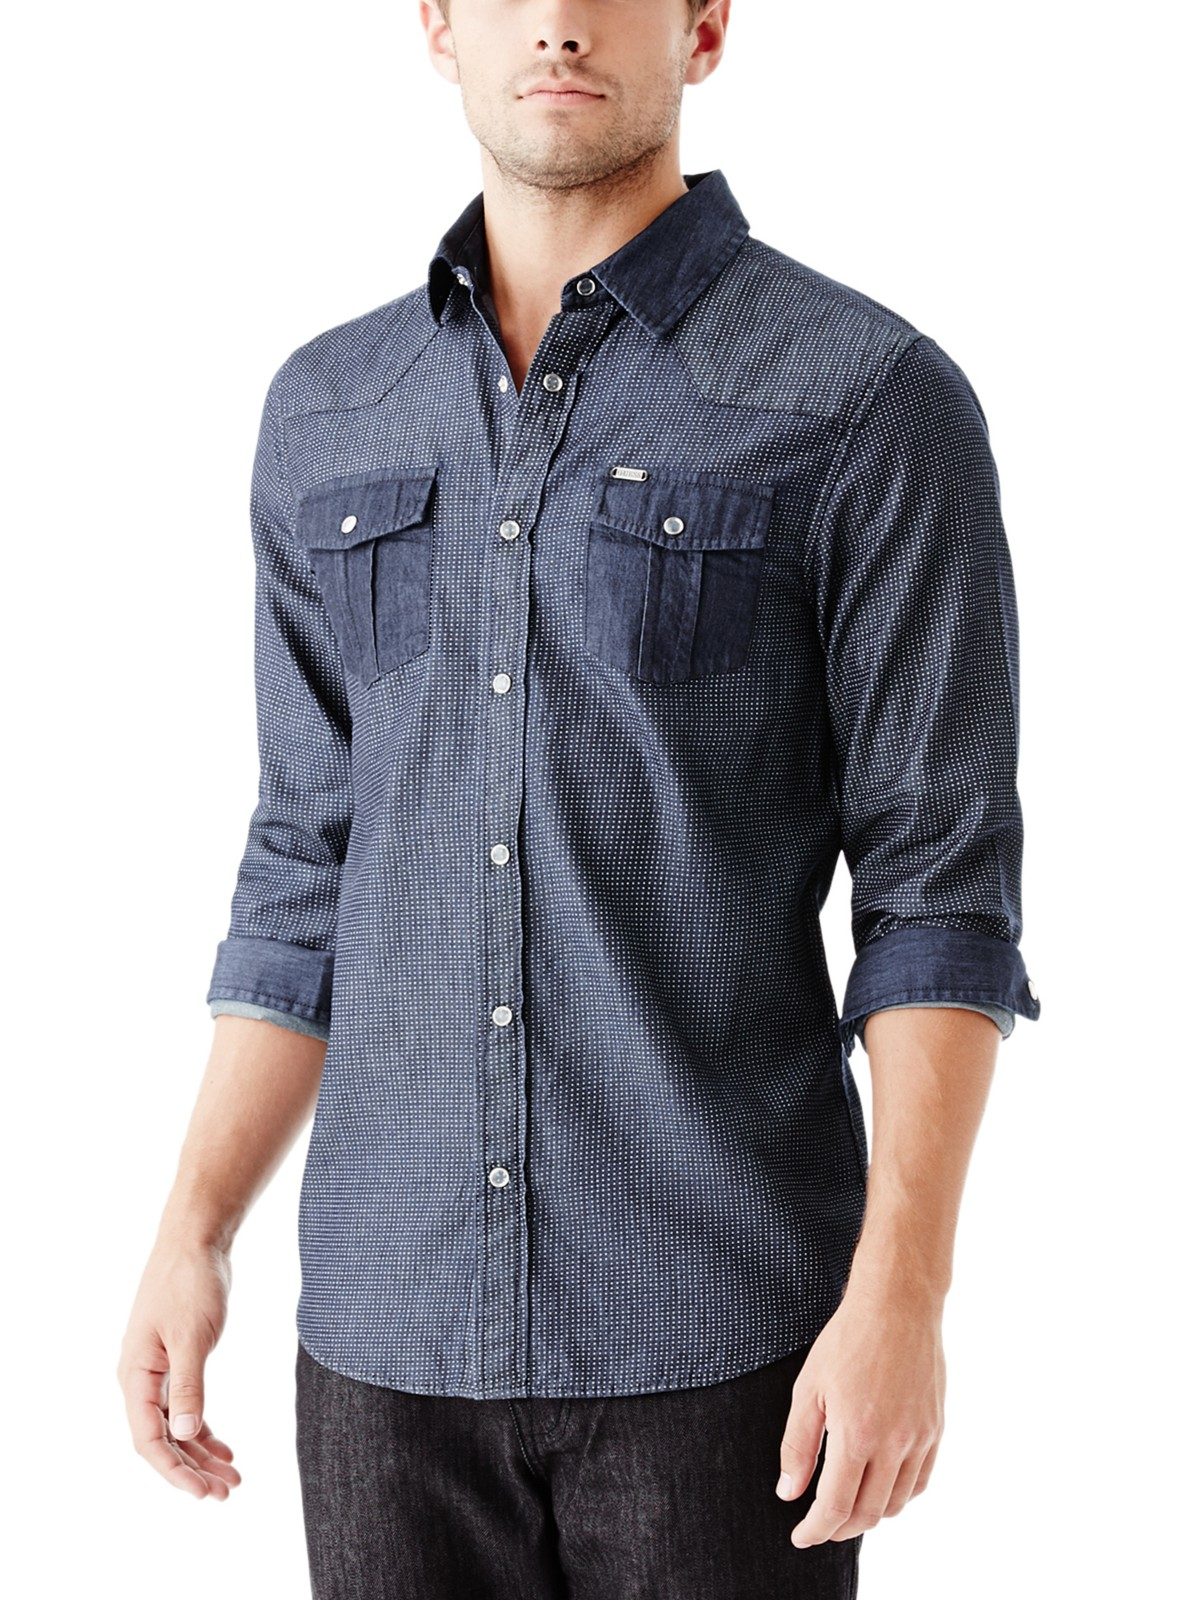 Guess men 39 s brigg chambray shirt ebay for Chambray 7 s